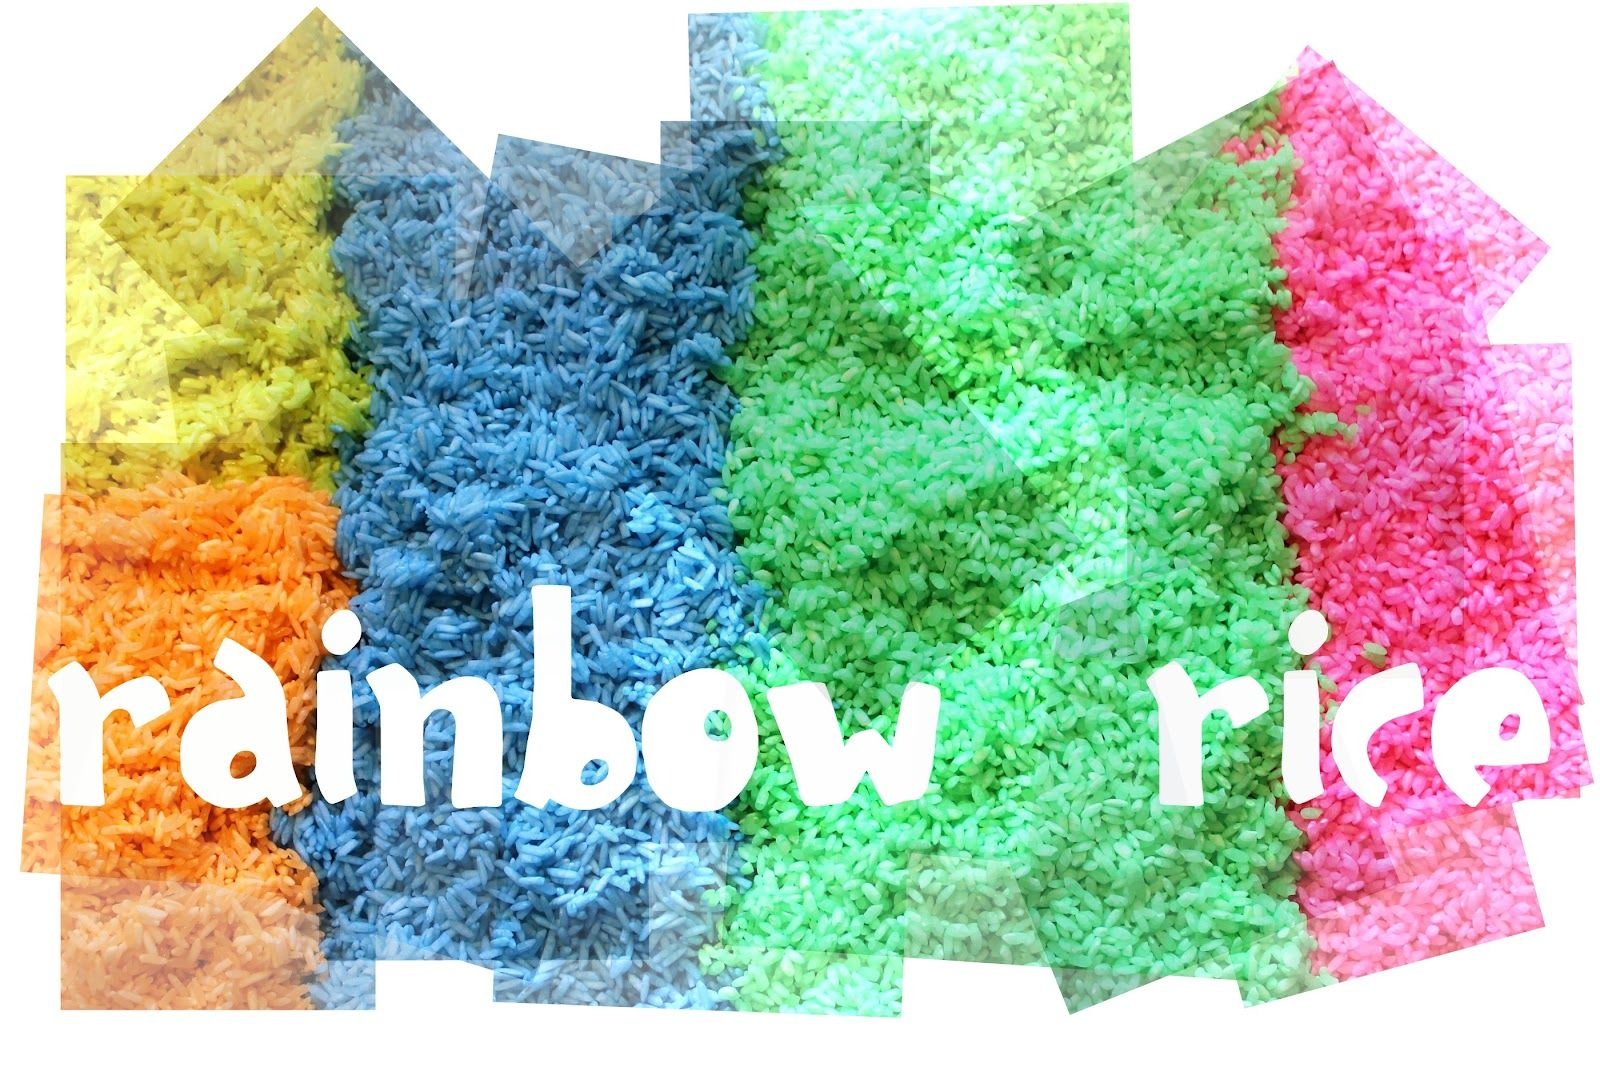 How To Color Rice For An Art Project